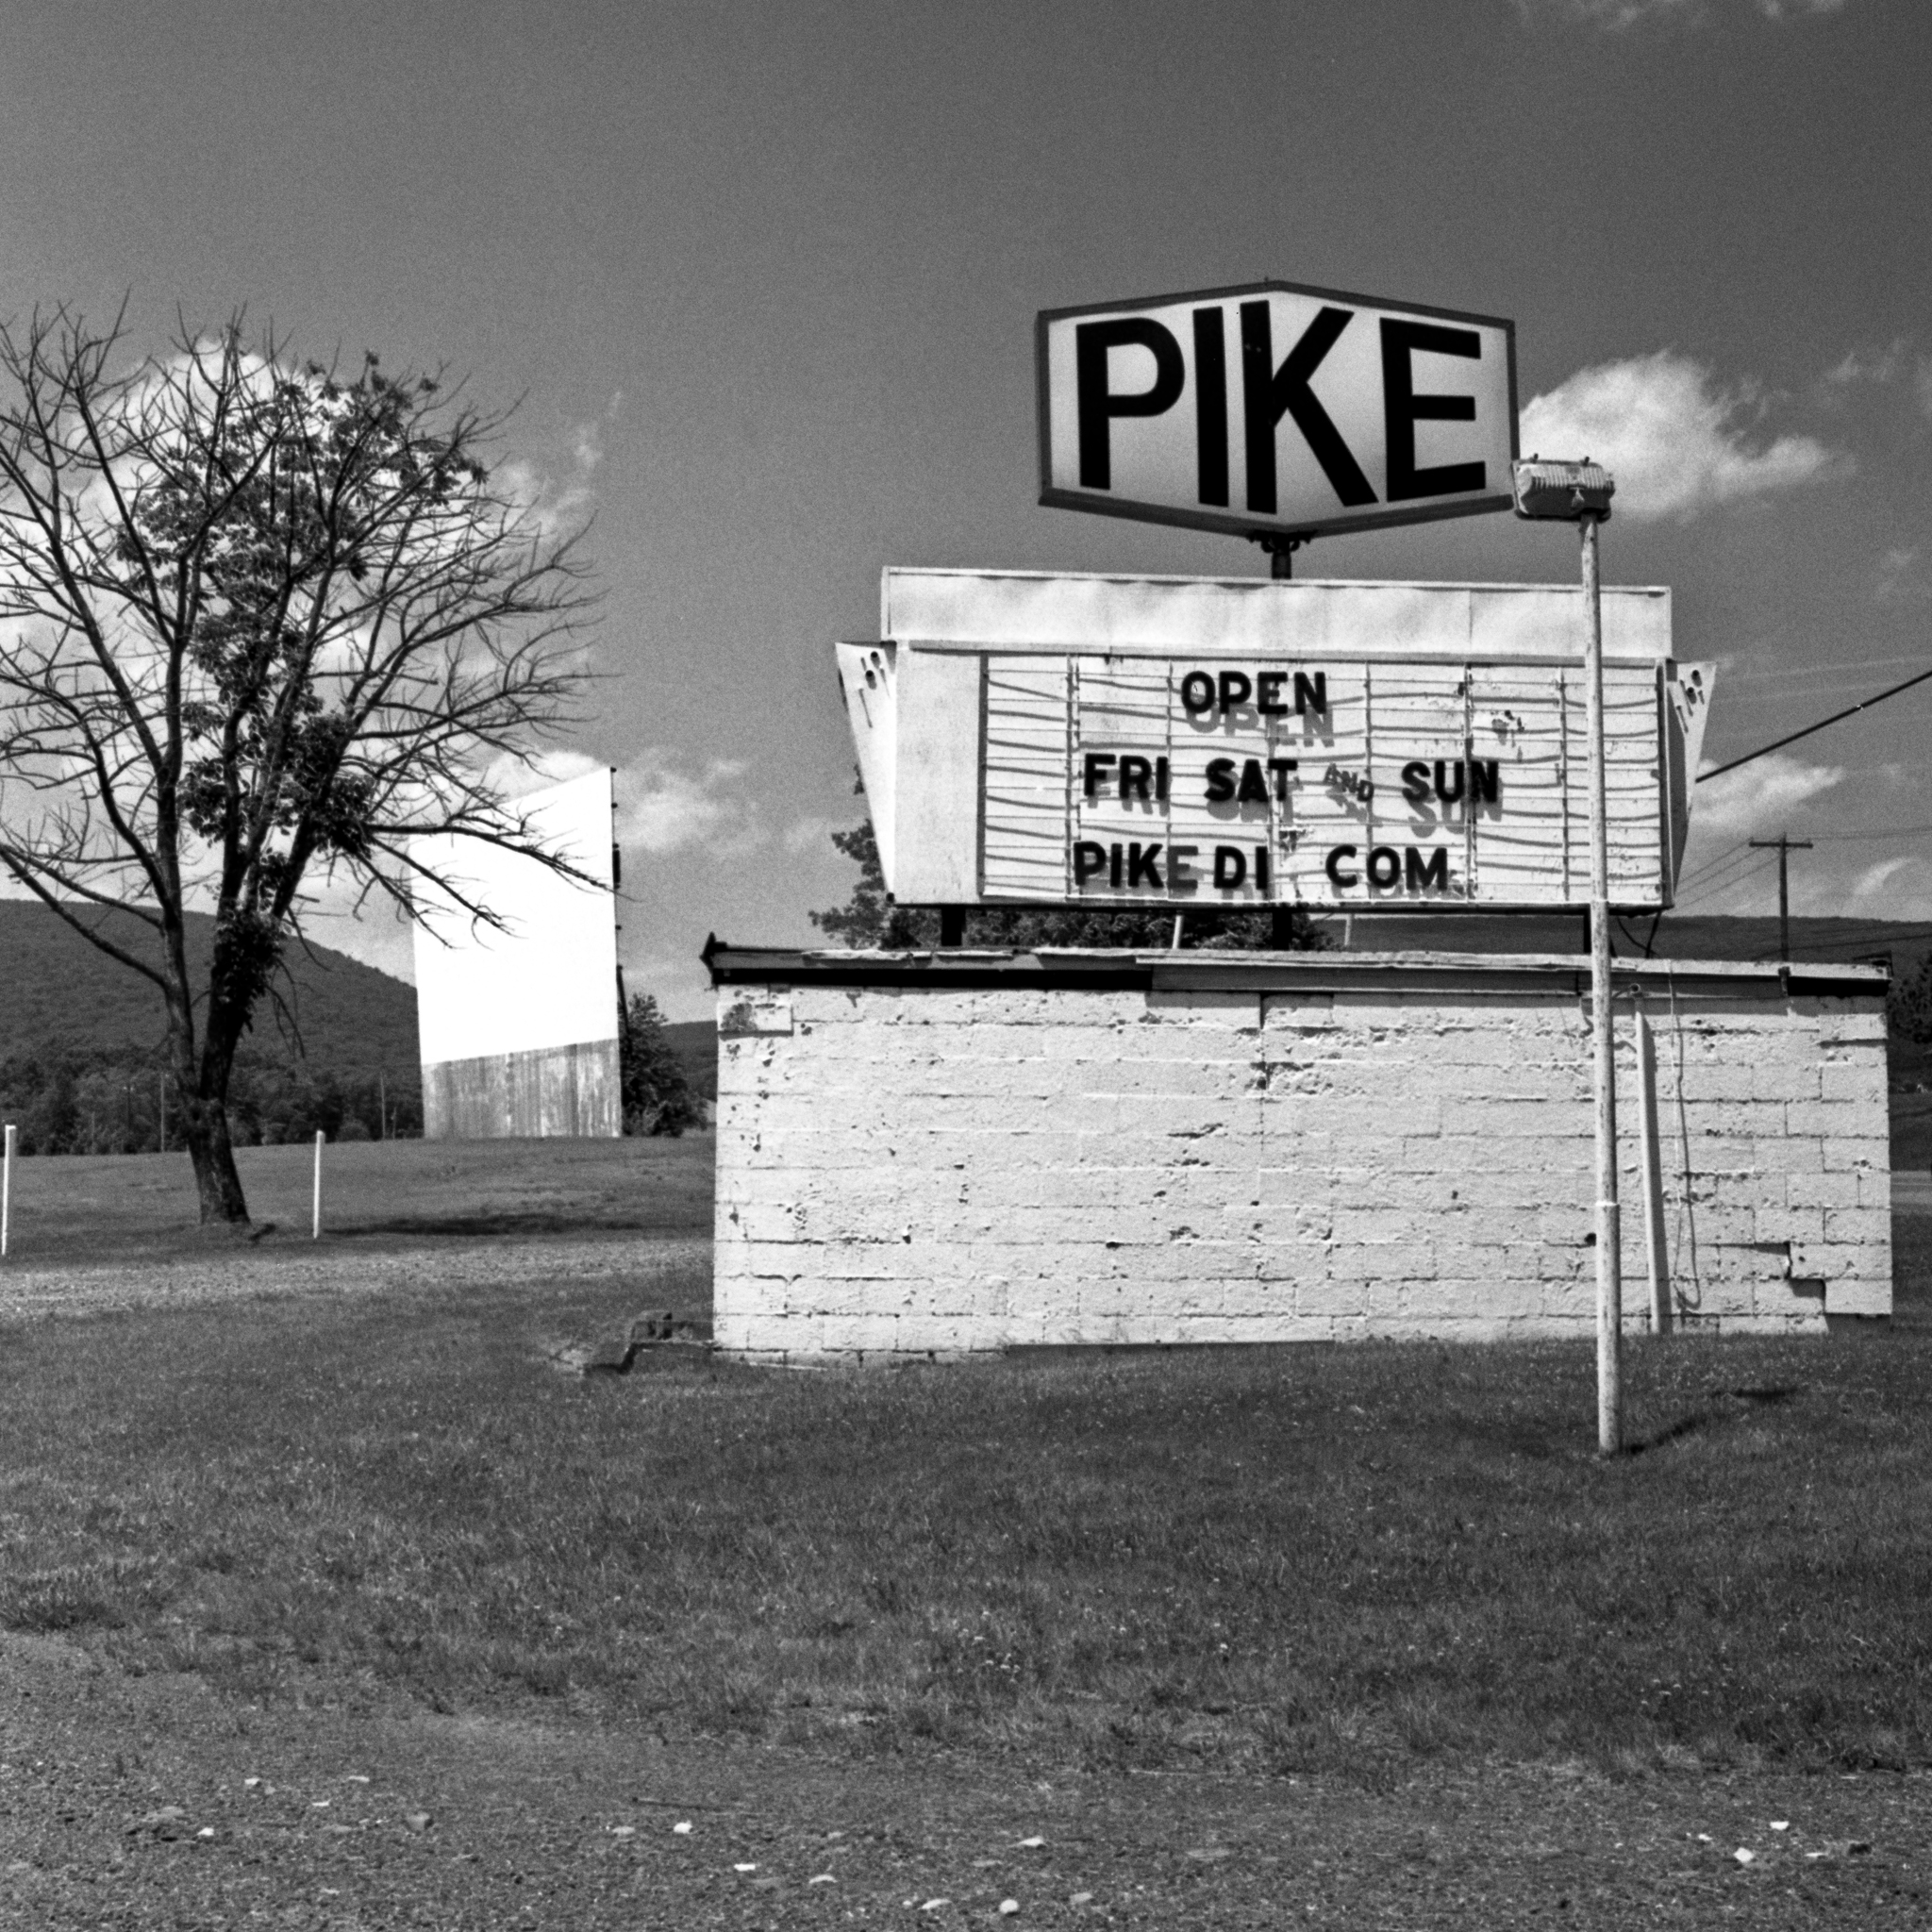 Pike Drive-In Theater in Montgomery, Lycoming County Pennsylvania.  Built in 1952.  It has three screens and operates only on the weekends.